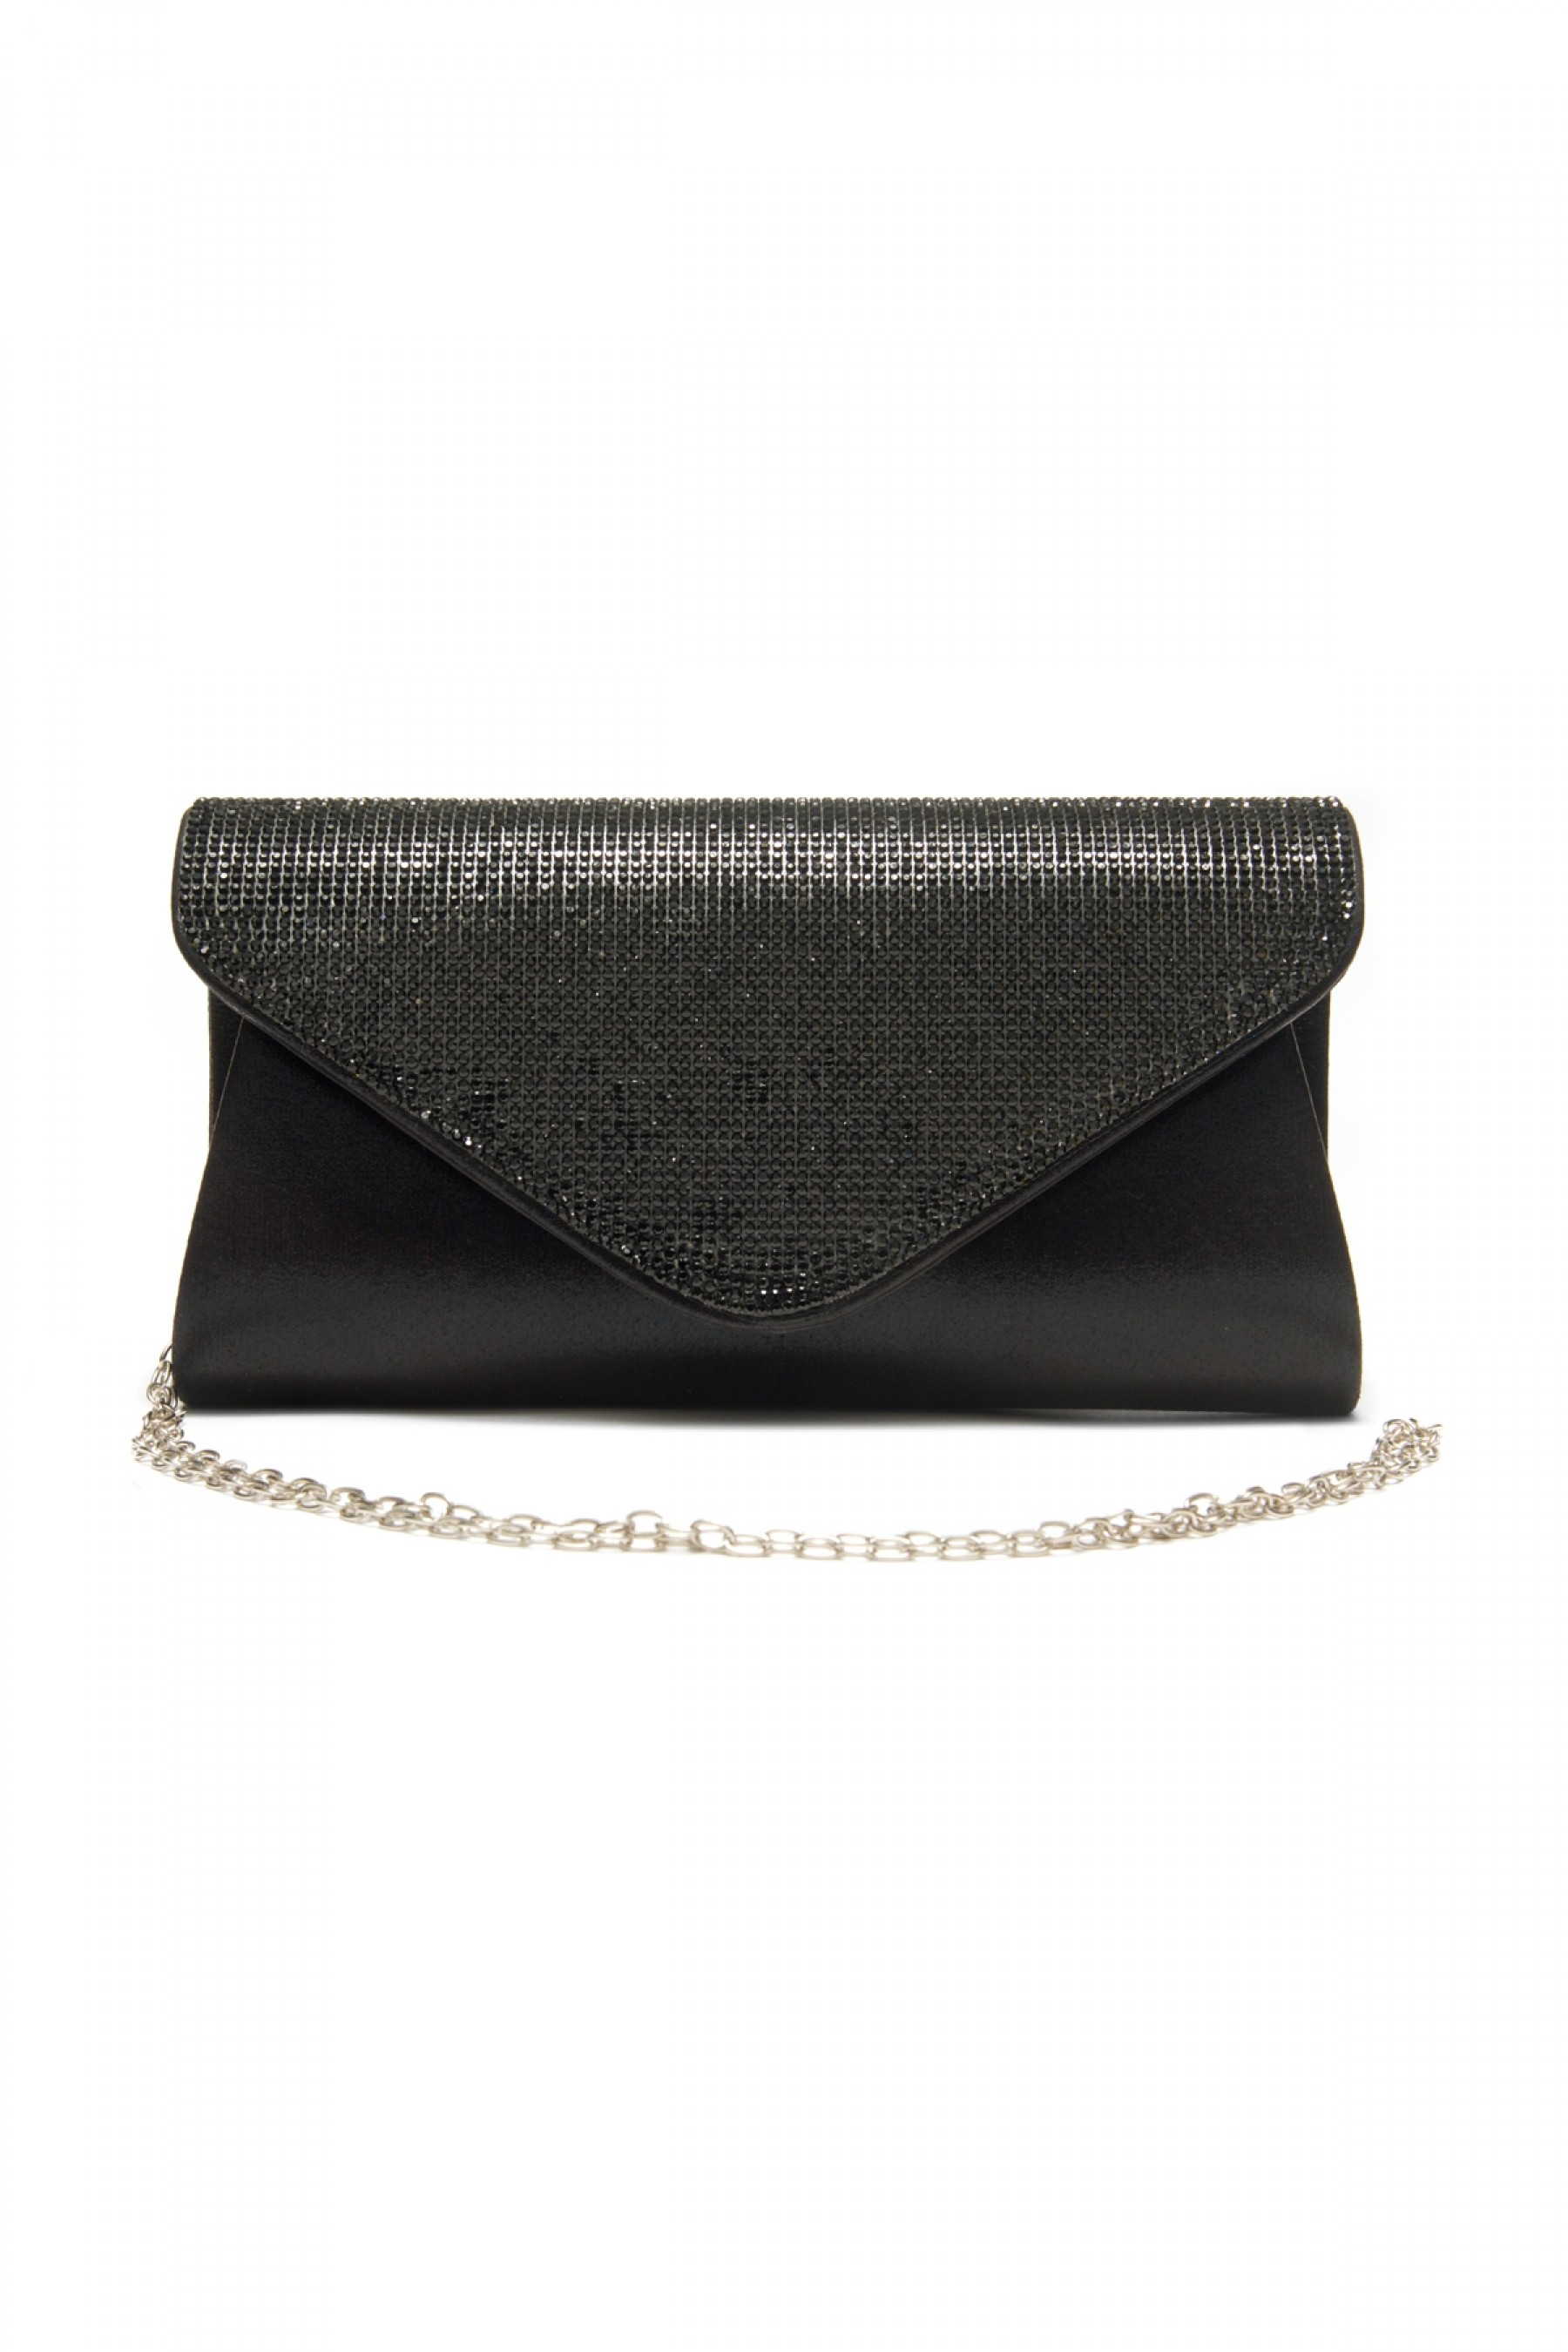 SZY-E8302- Emblazoned with rhinestone women's stylish envelope purse (Black)